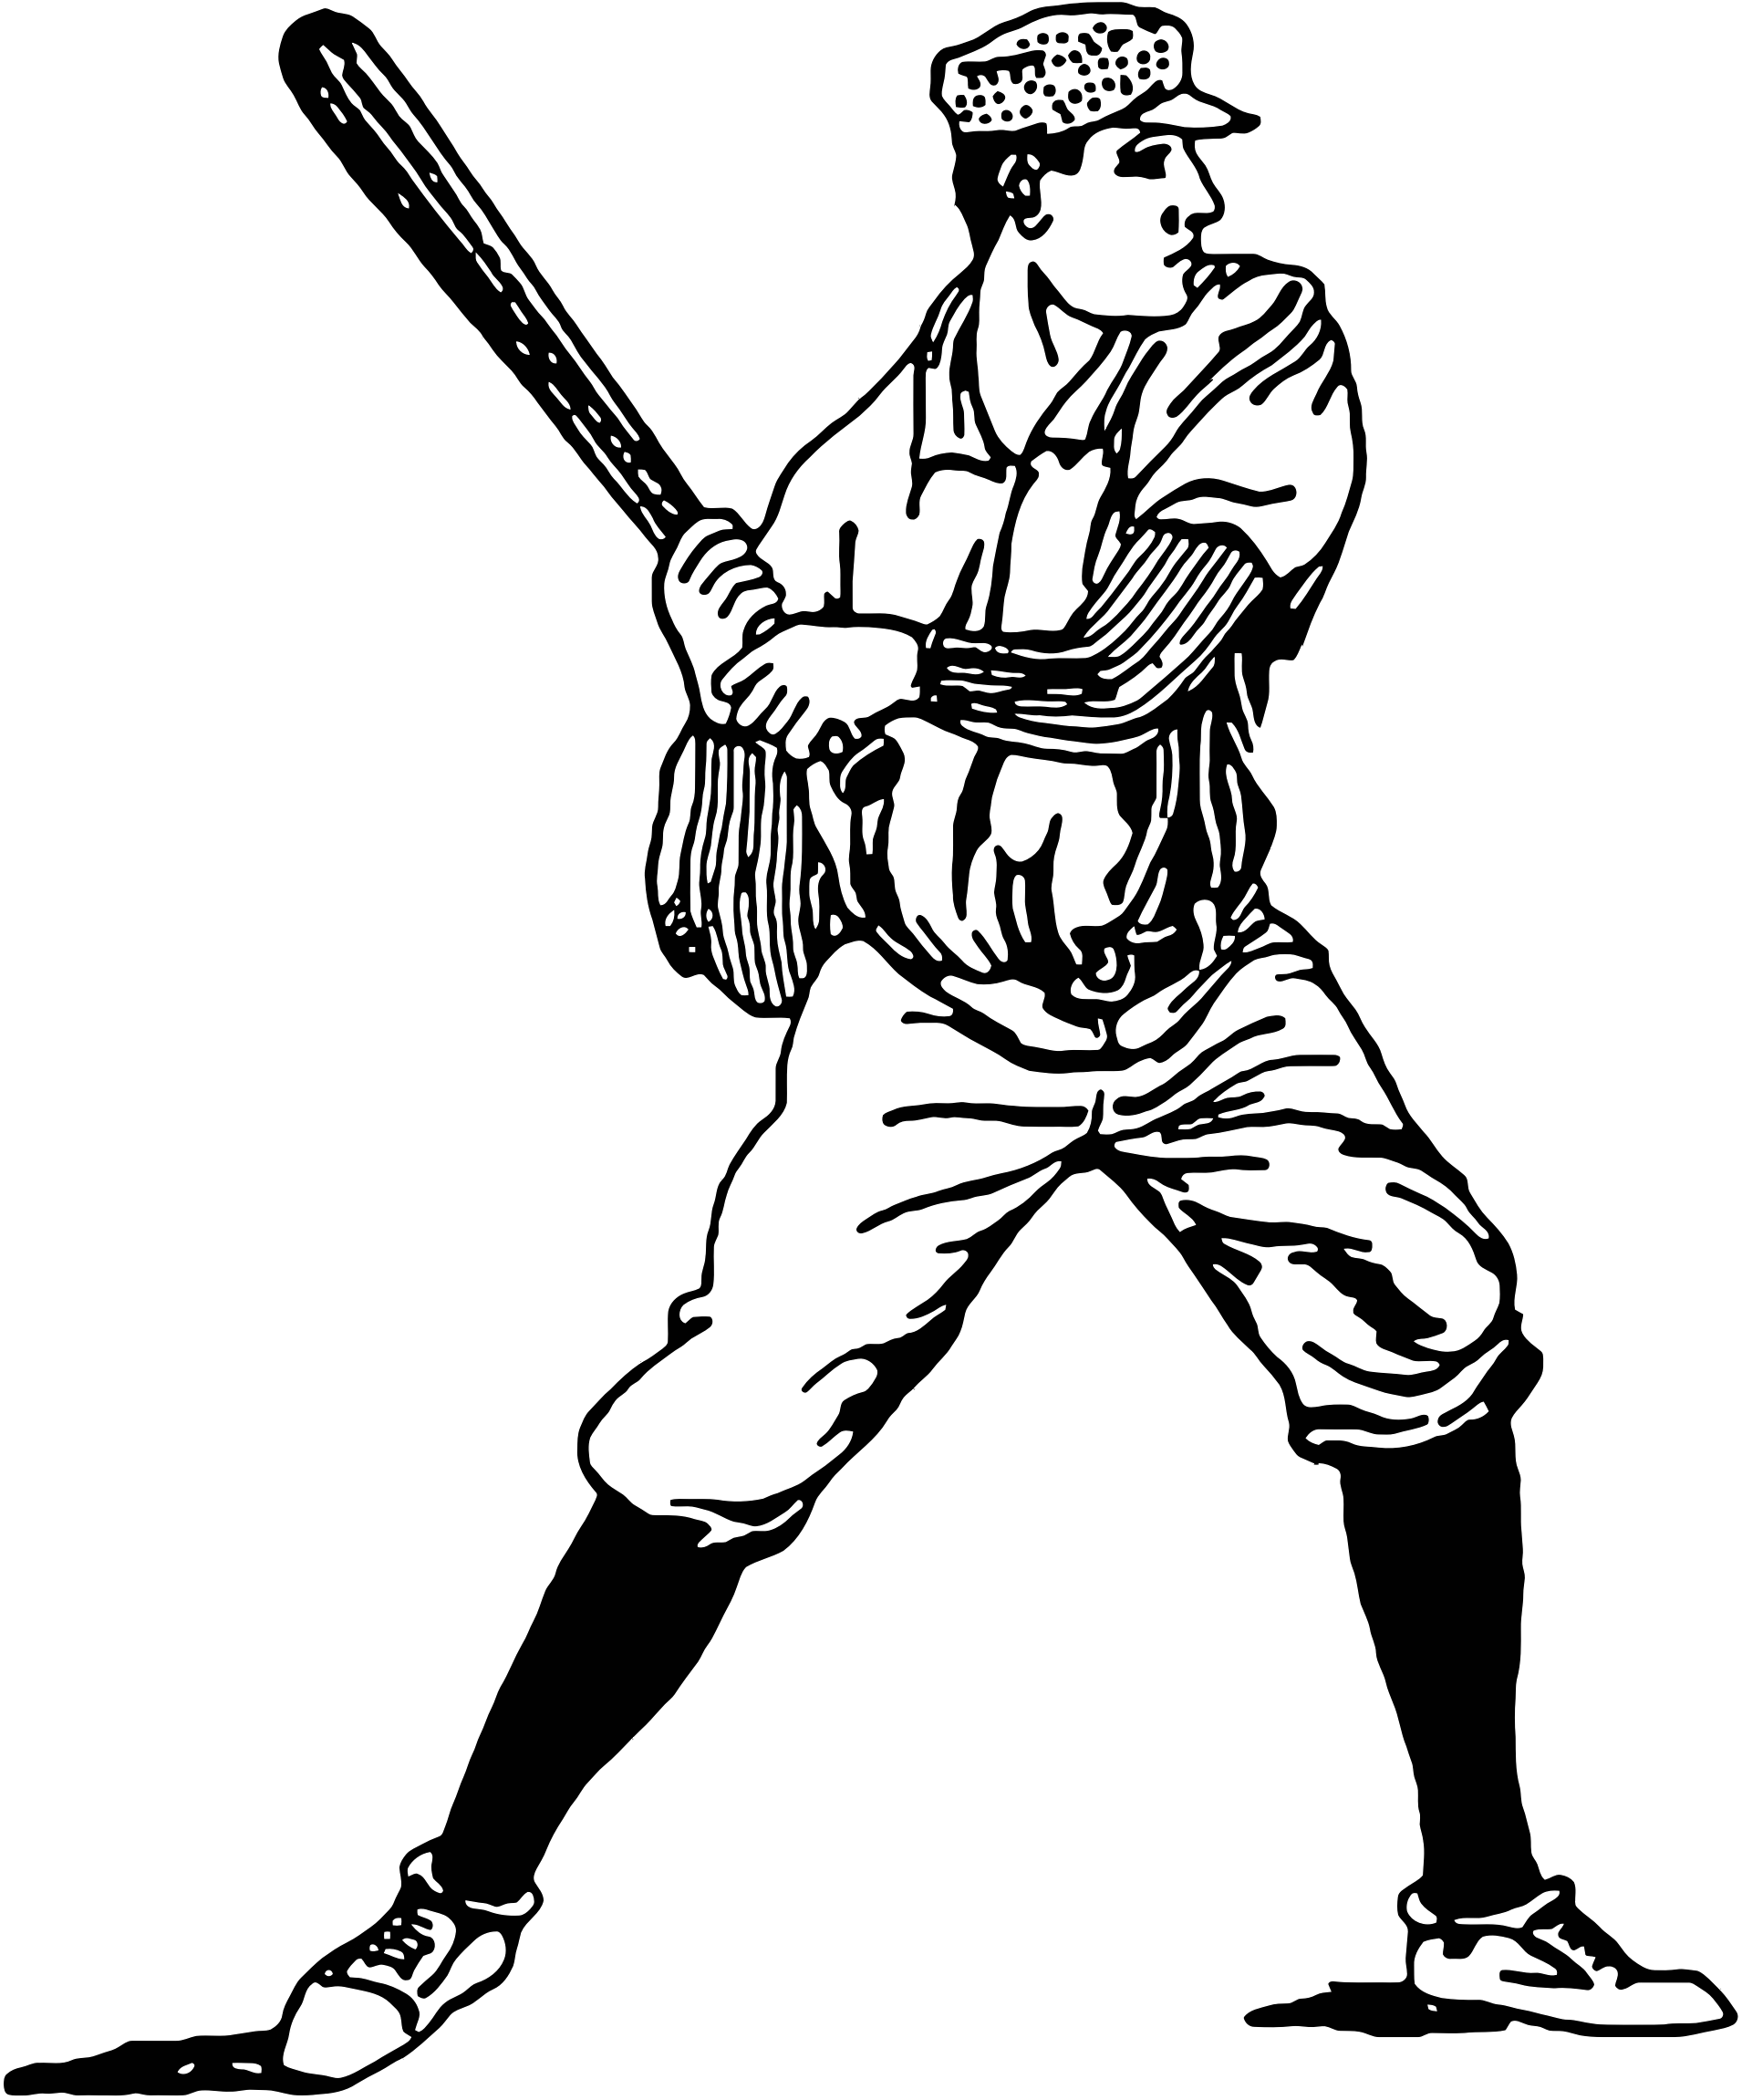 Baseball line clipart freeuse stock Clipart - Vintage Baseball Player Illustration freeuse stock